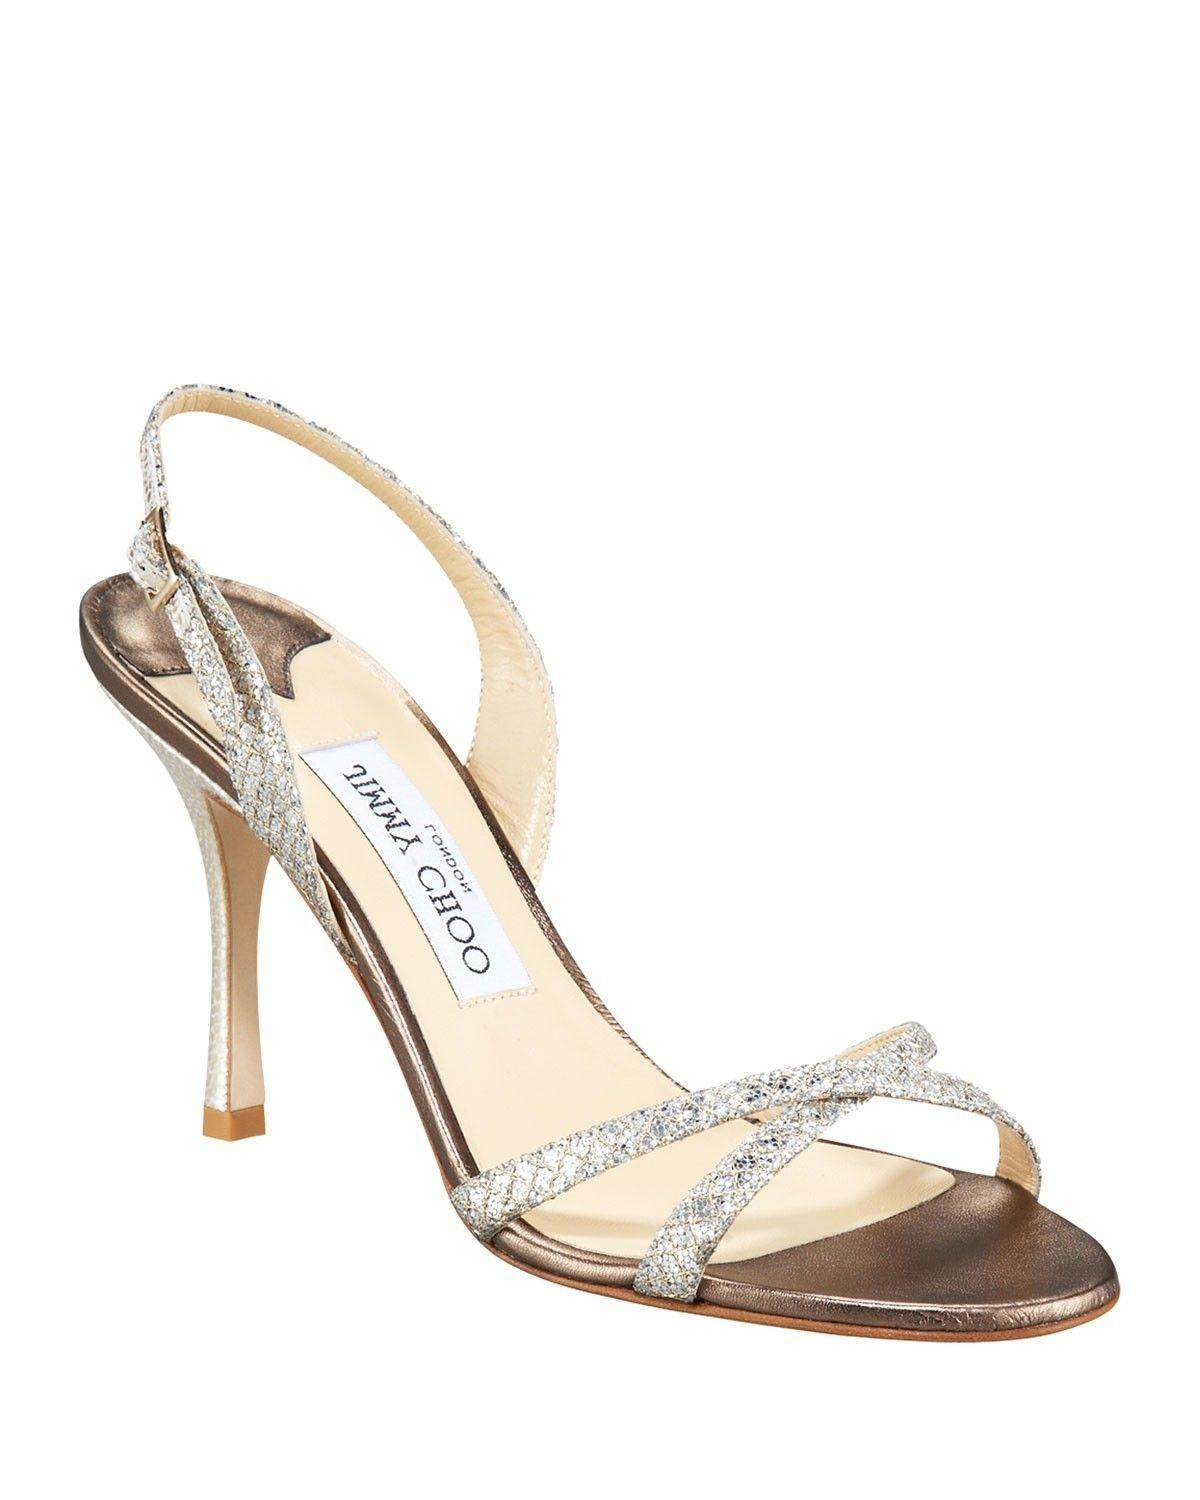 31b58ae009c Jimmy Choo Silver Silver Silver India Glitter Leather Open Toe Slingback  Slip Sandals Size US 6.5 Regular (M